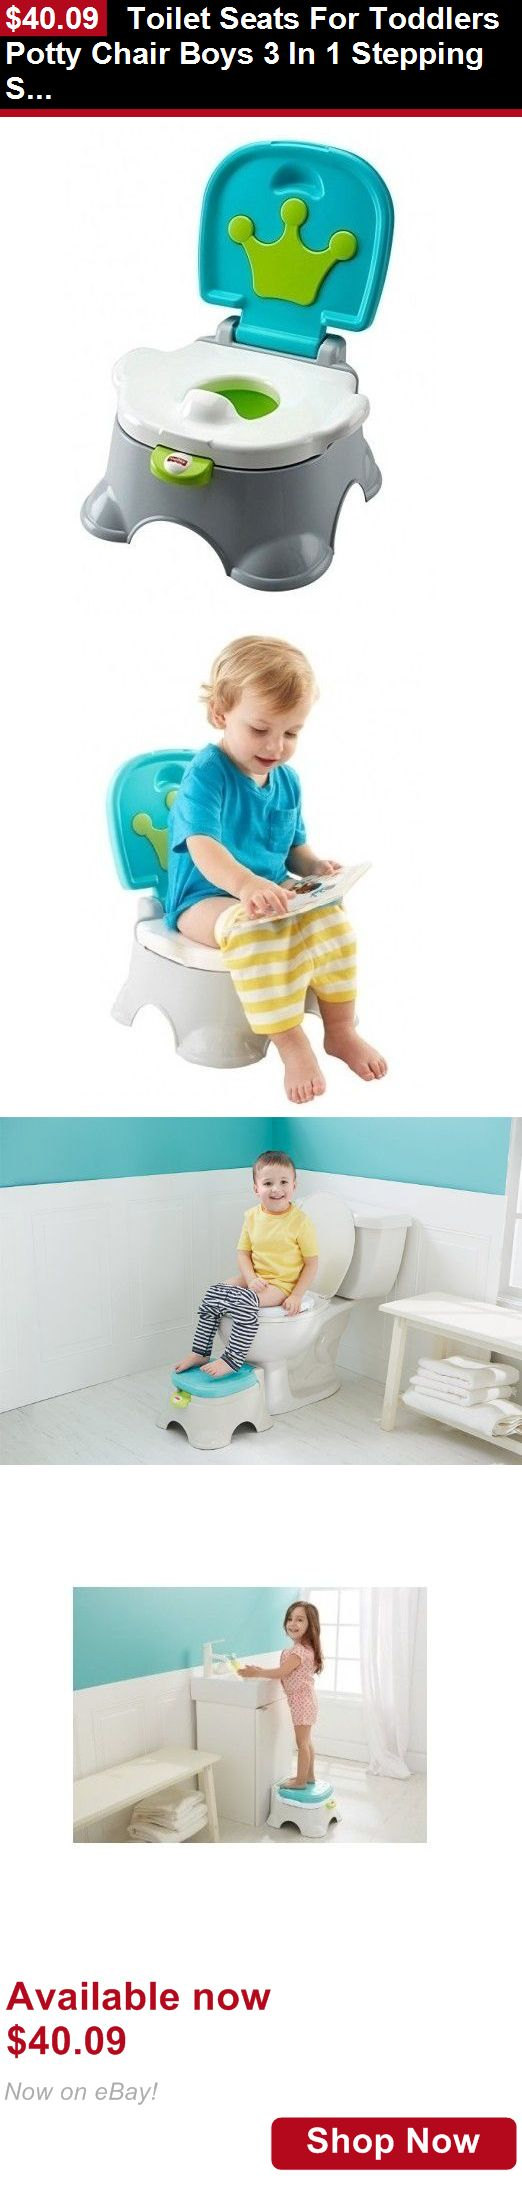 Potty Training: Toilet Seats For Toddlers Potty Chair Boys 3 In 1 Stepping Stool Kids Training BUY IT NOW ONLY: $40.09